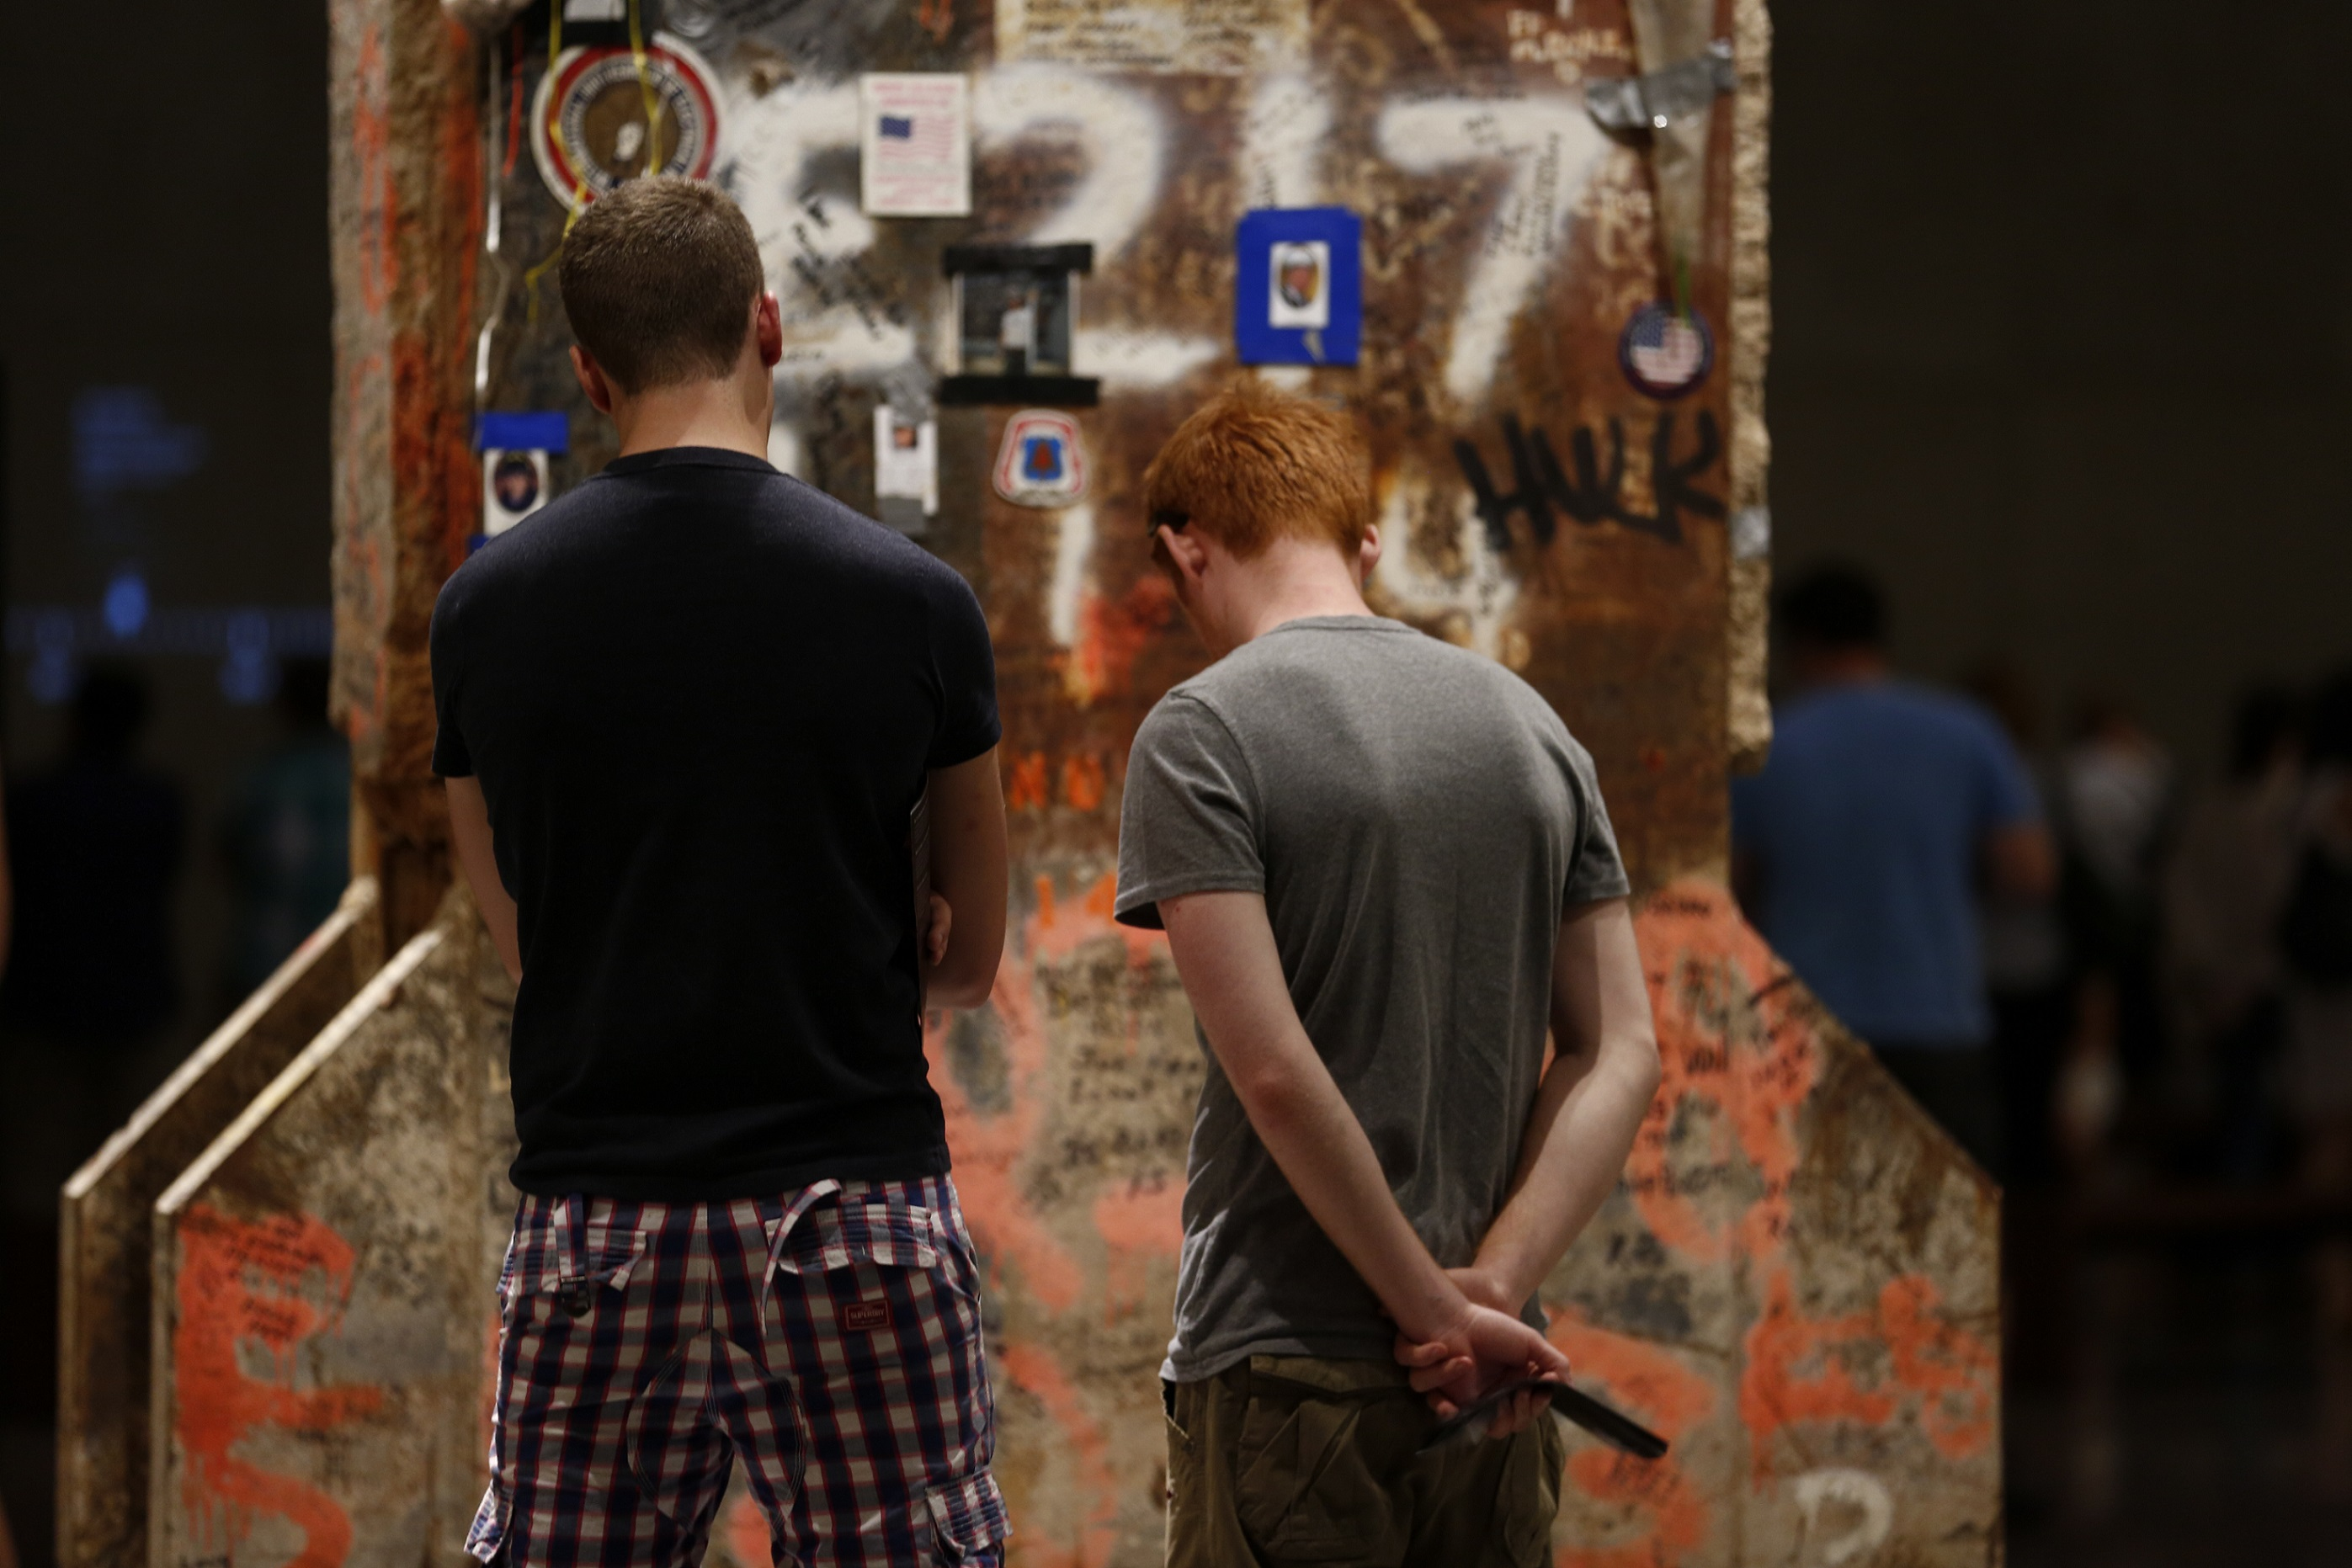 Two men face away as they look at the Last Column in Foundation Hall. The rusty column is covered in stickers, photos, handwritten messages, and other tributes, along with orange marking paint.